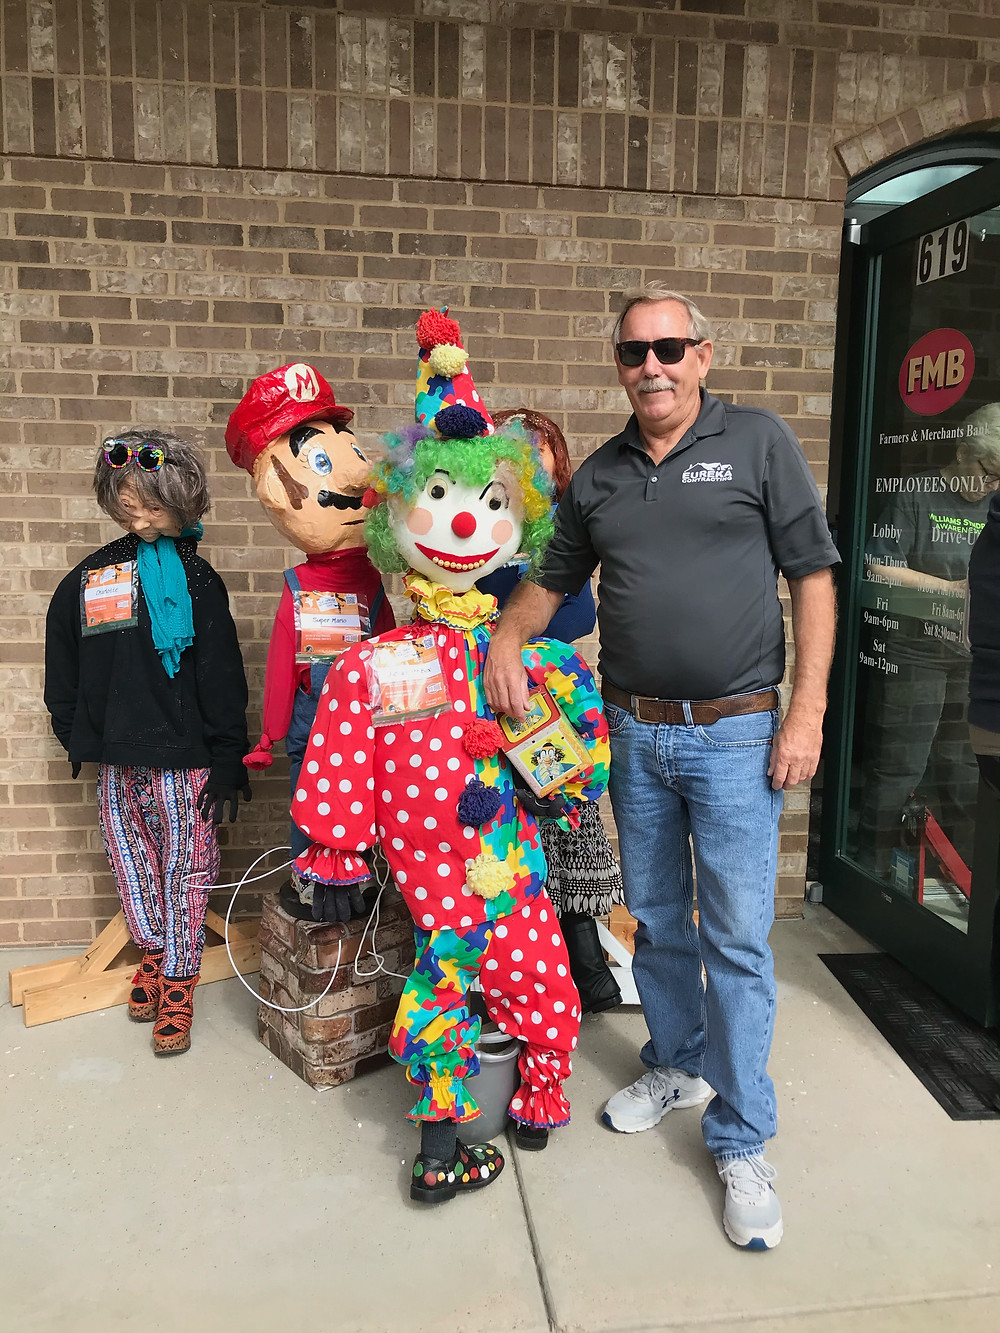 Clowning around with scarecrow friends - Eureka Contracting & Roofing - Eureka, MO